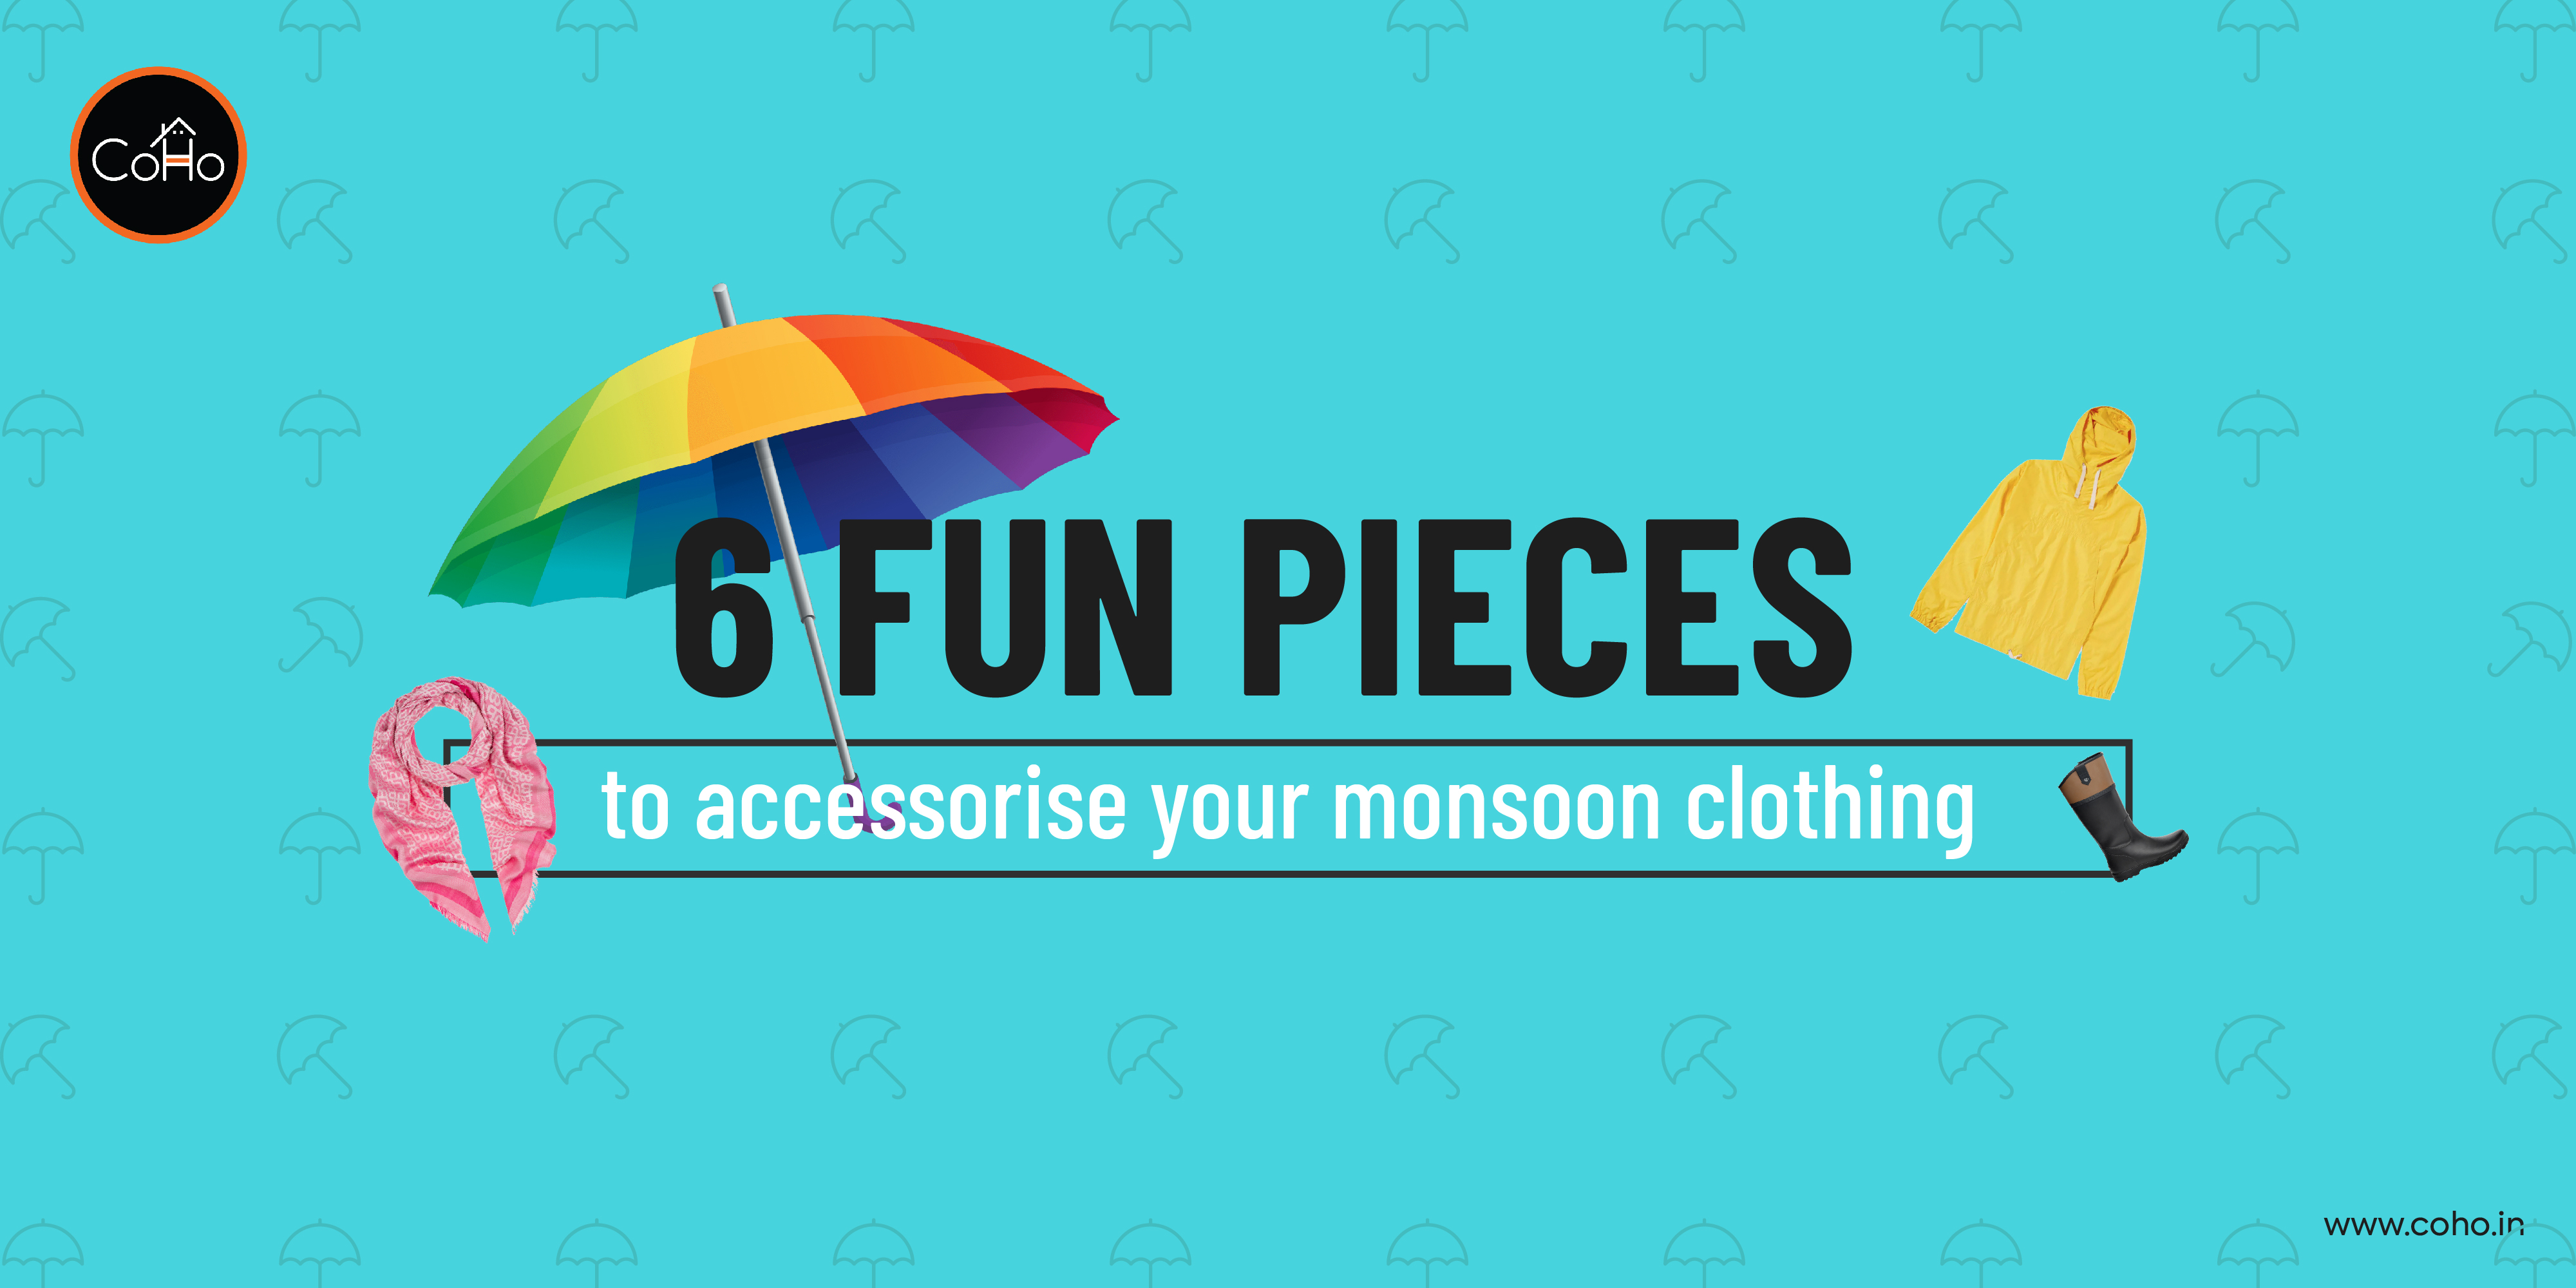 6 Fun Pieces to Accessorize Your Monsoon Clothing!